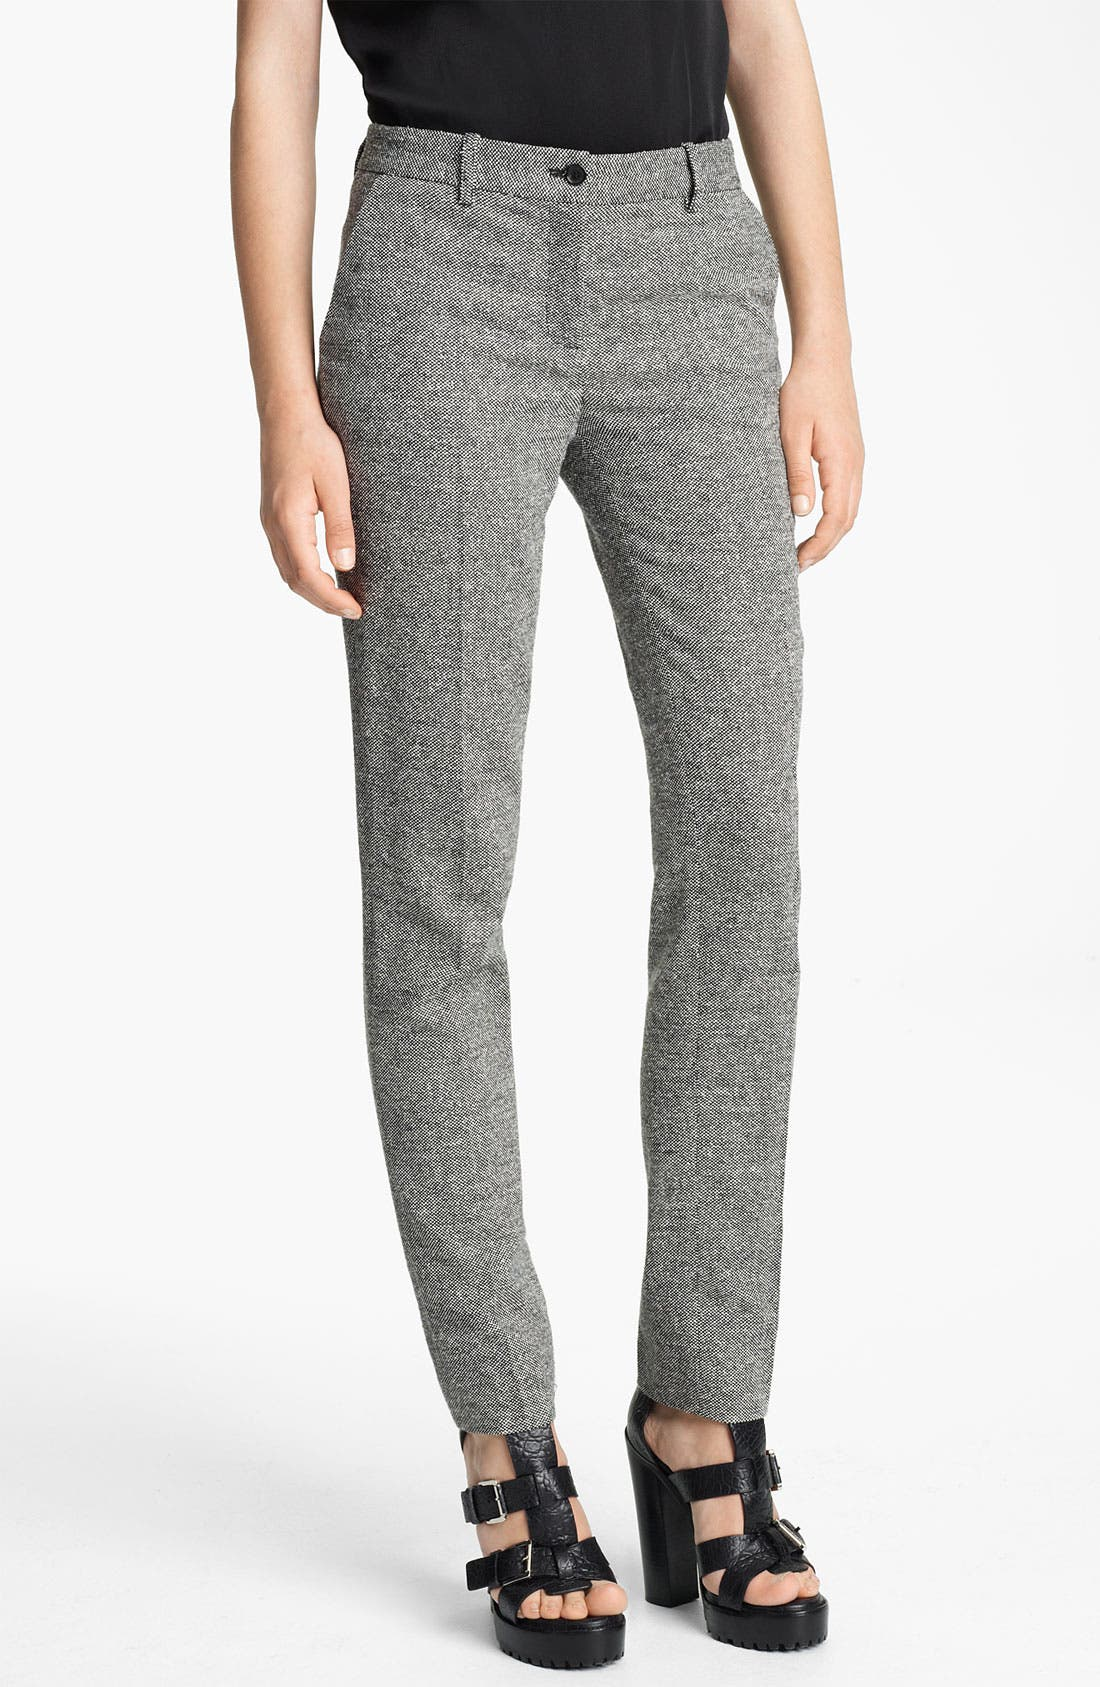 Alternate Image 1 Selected - Michael Kors 'Samantha' Skinny Donegal Tweed Pants